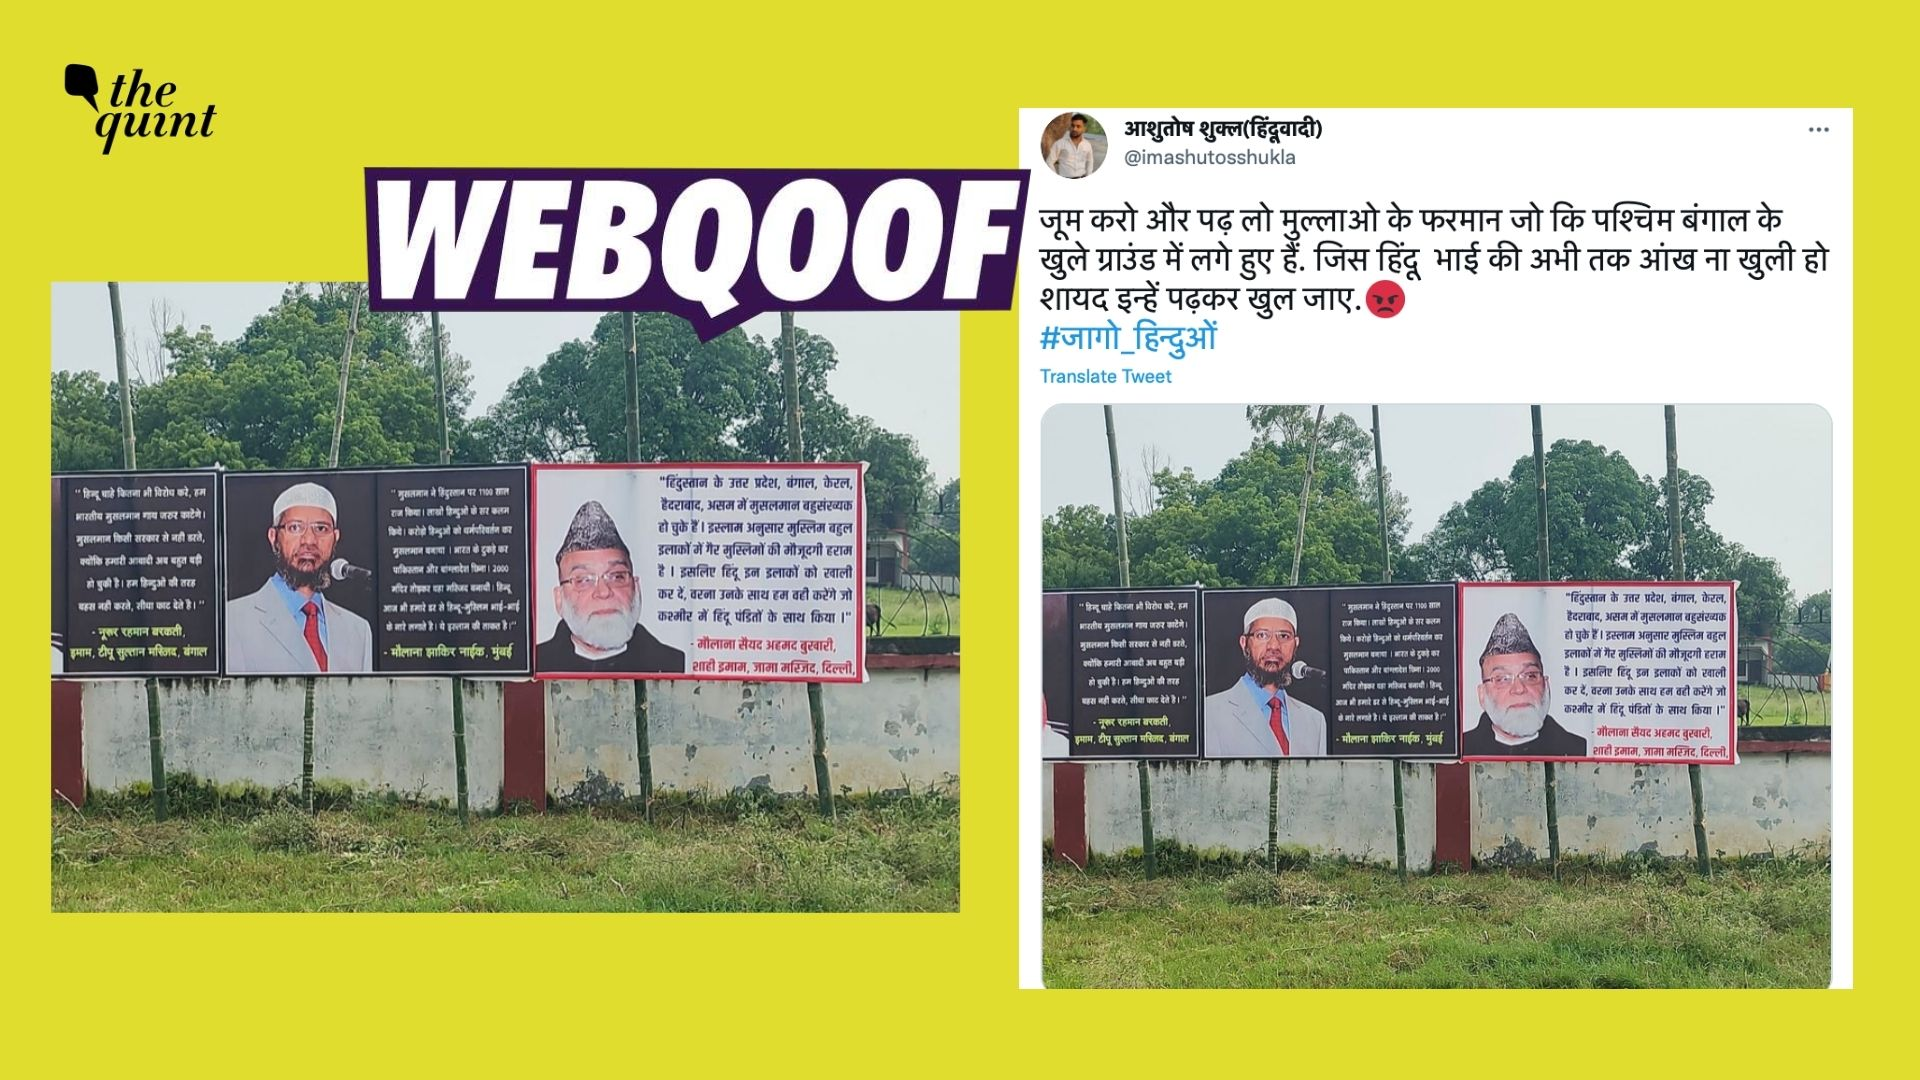 Image of Objectionable Hoardings is From UP's Pratapgarh, Not West Bengal